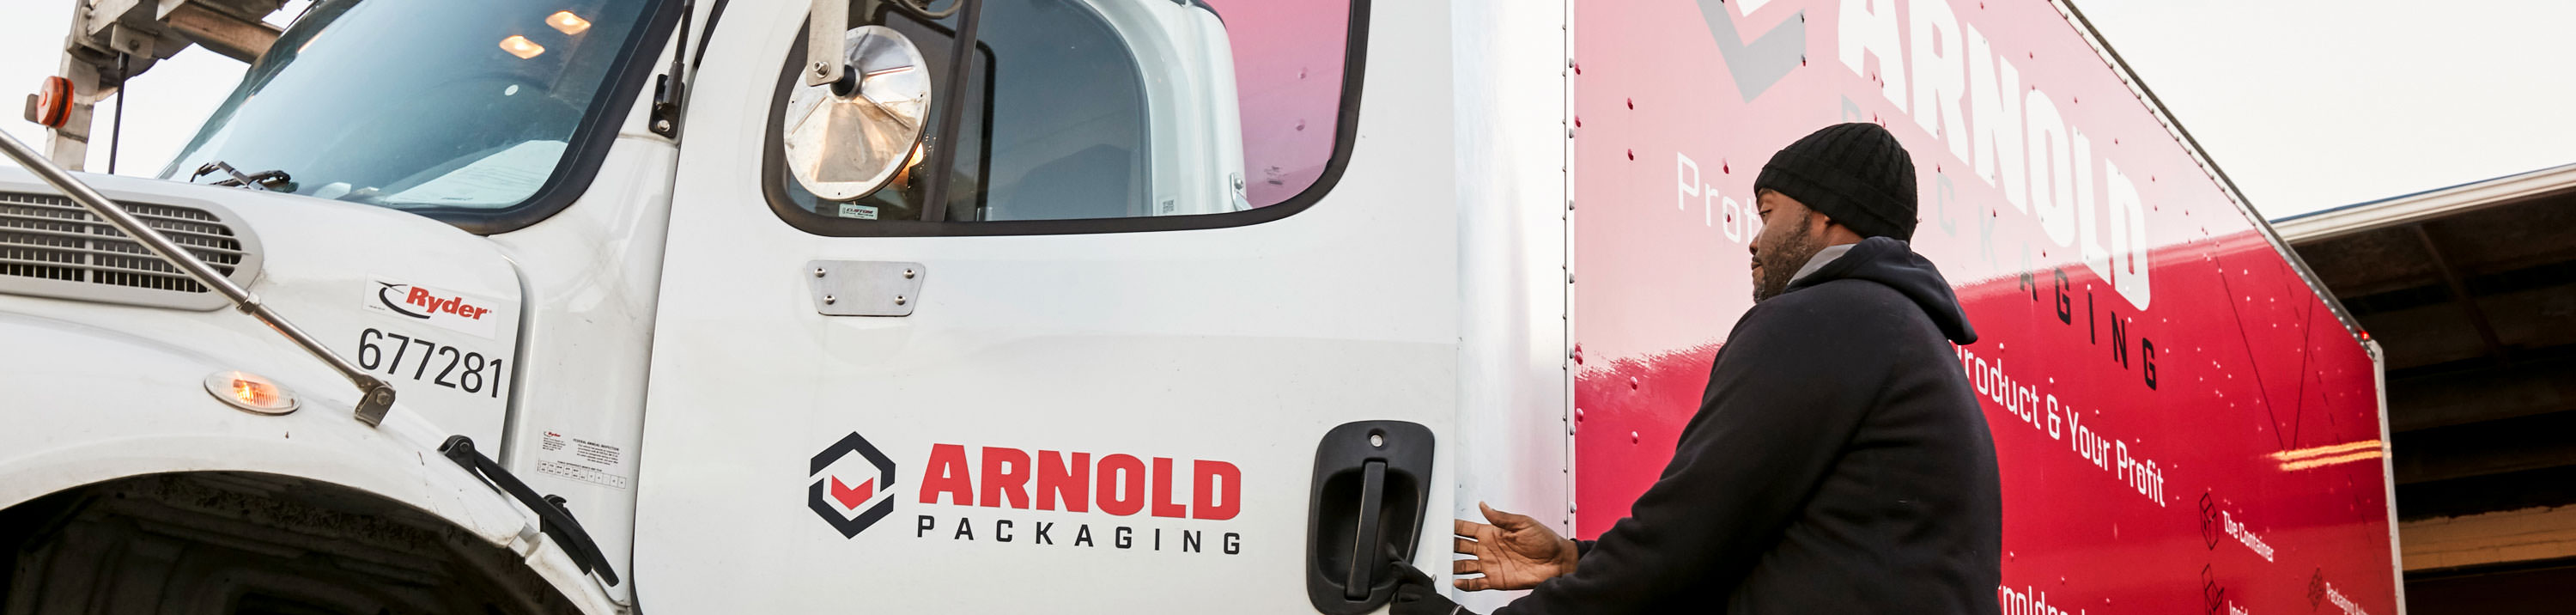 Arnold Packaging - Our Culture